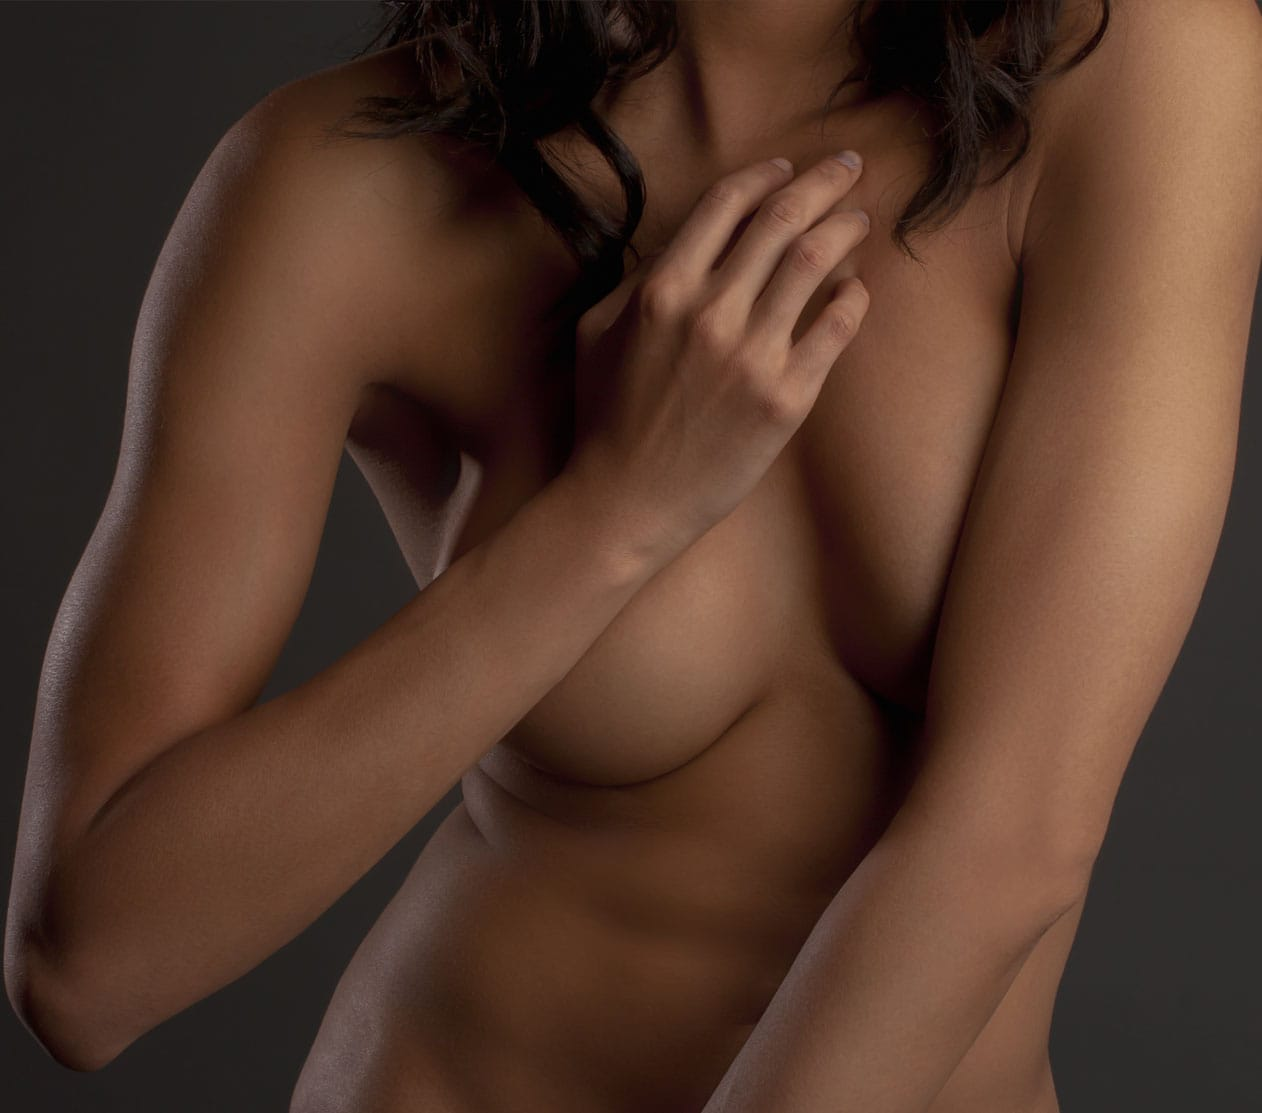 Breast Implant Rupture Houston